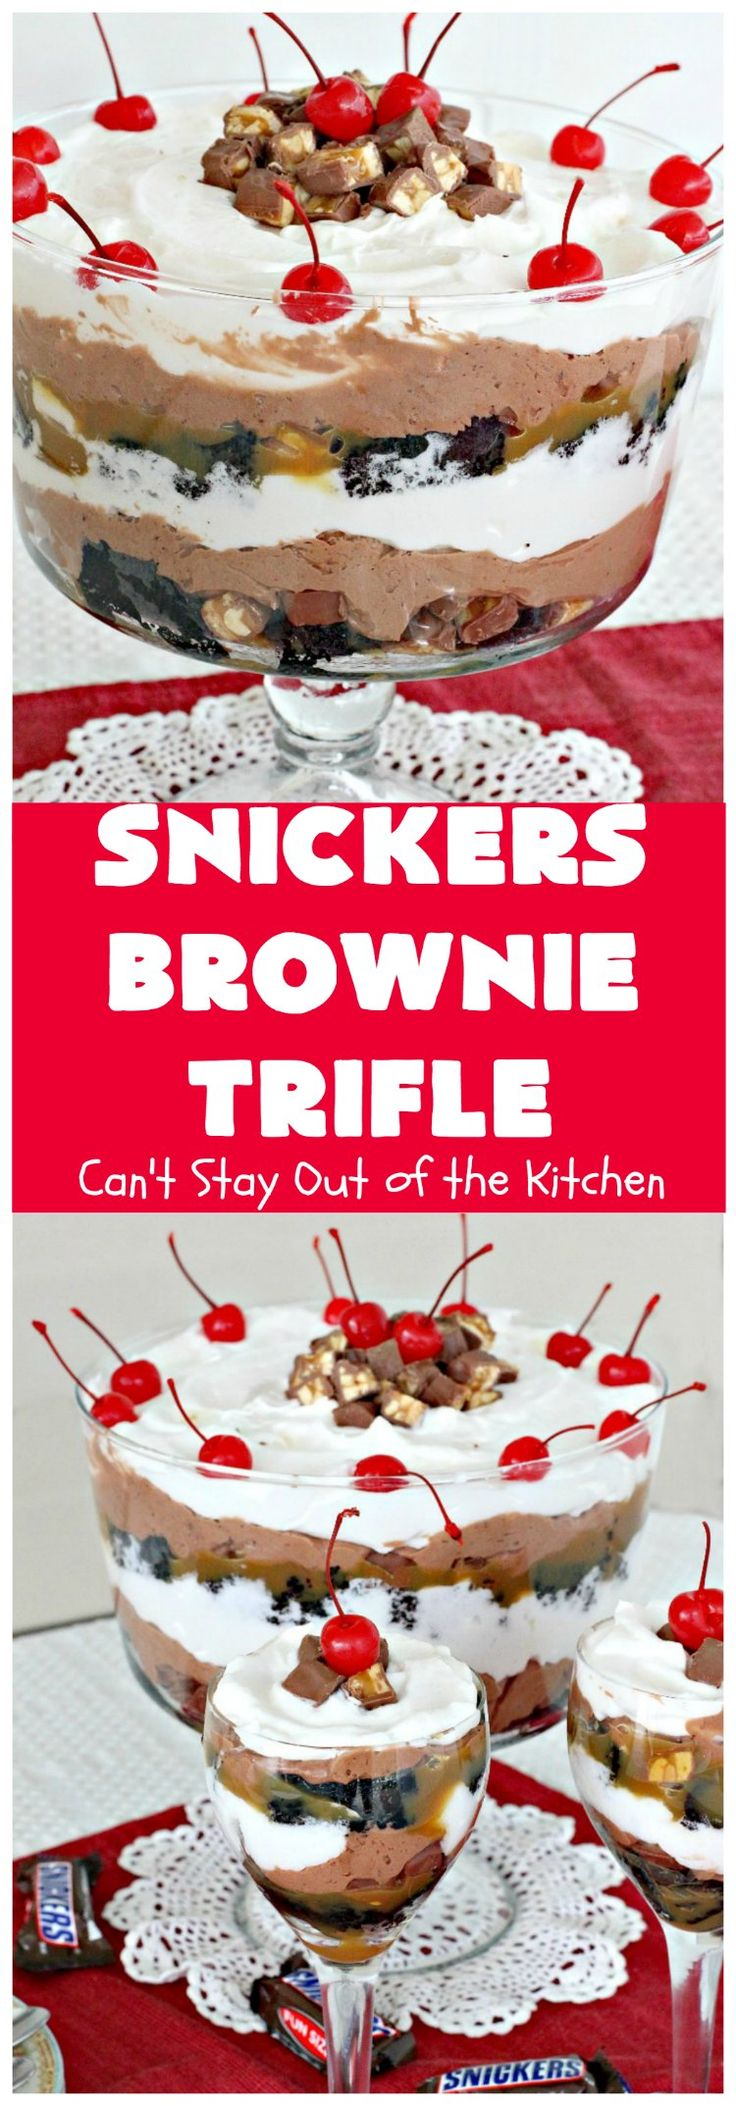 Snickers Brownie Trifle | Can't Stay Out of the Kitchen | this rich & decadent dessert is filled with homemade #brownies, #Snickers bars, #chocolate pudding & #caramel sauce. It's the perfect #dessert for the #holidays, #Christmas, #ValentinesDay or special occasions.